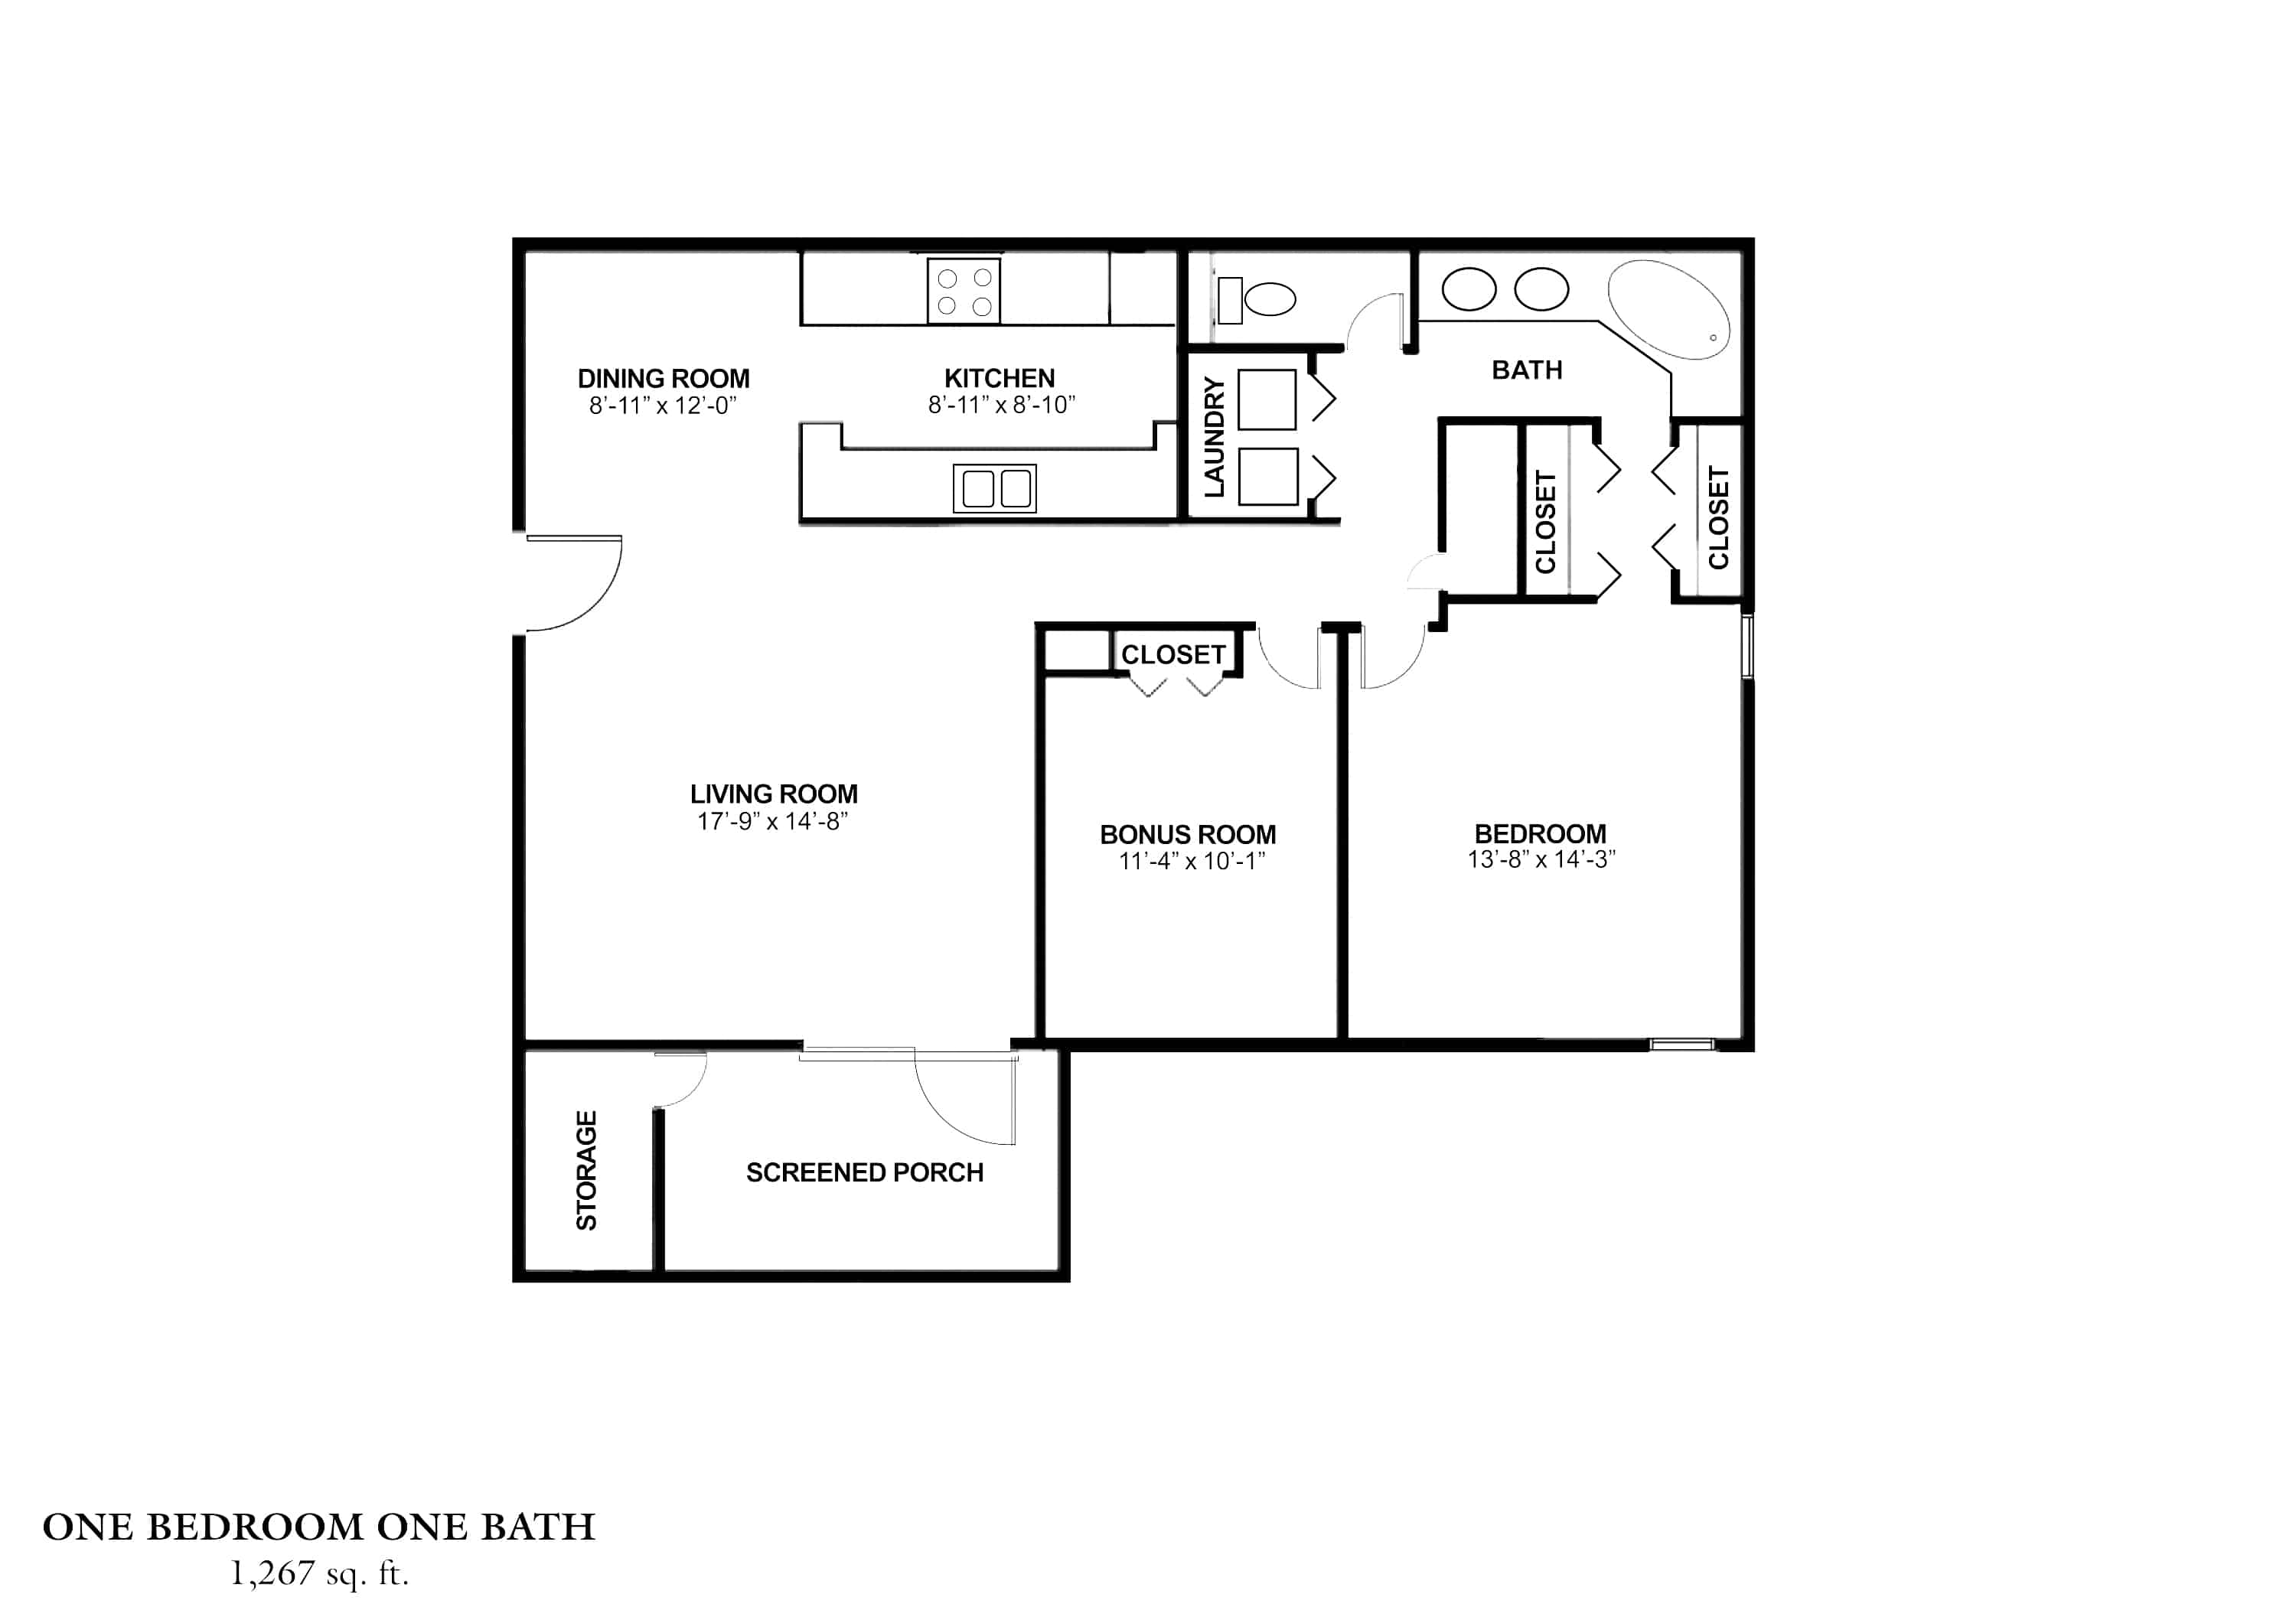 One Bedroom, One Bath with Bonus Room Approx. 1,267 sq. ft. Rent From $865-$910 Beds 1 Baths 1